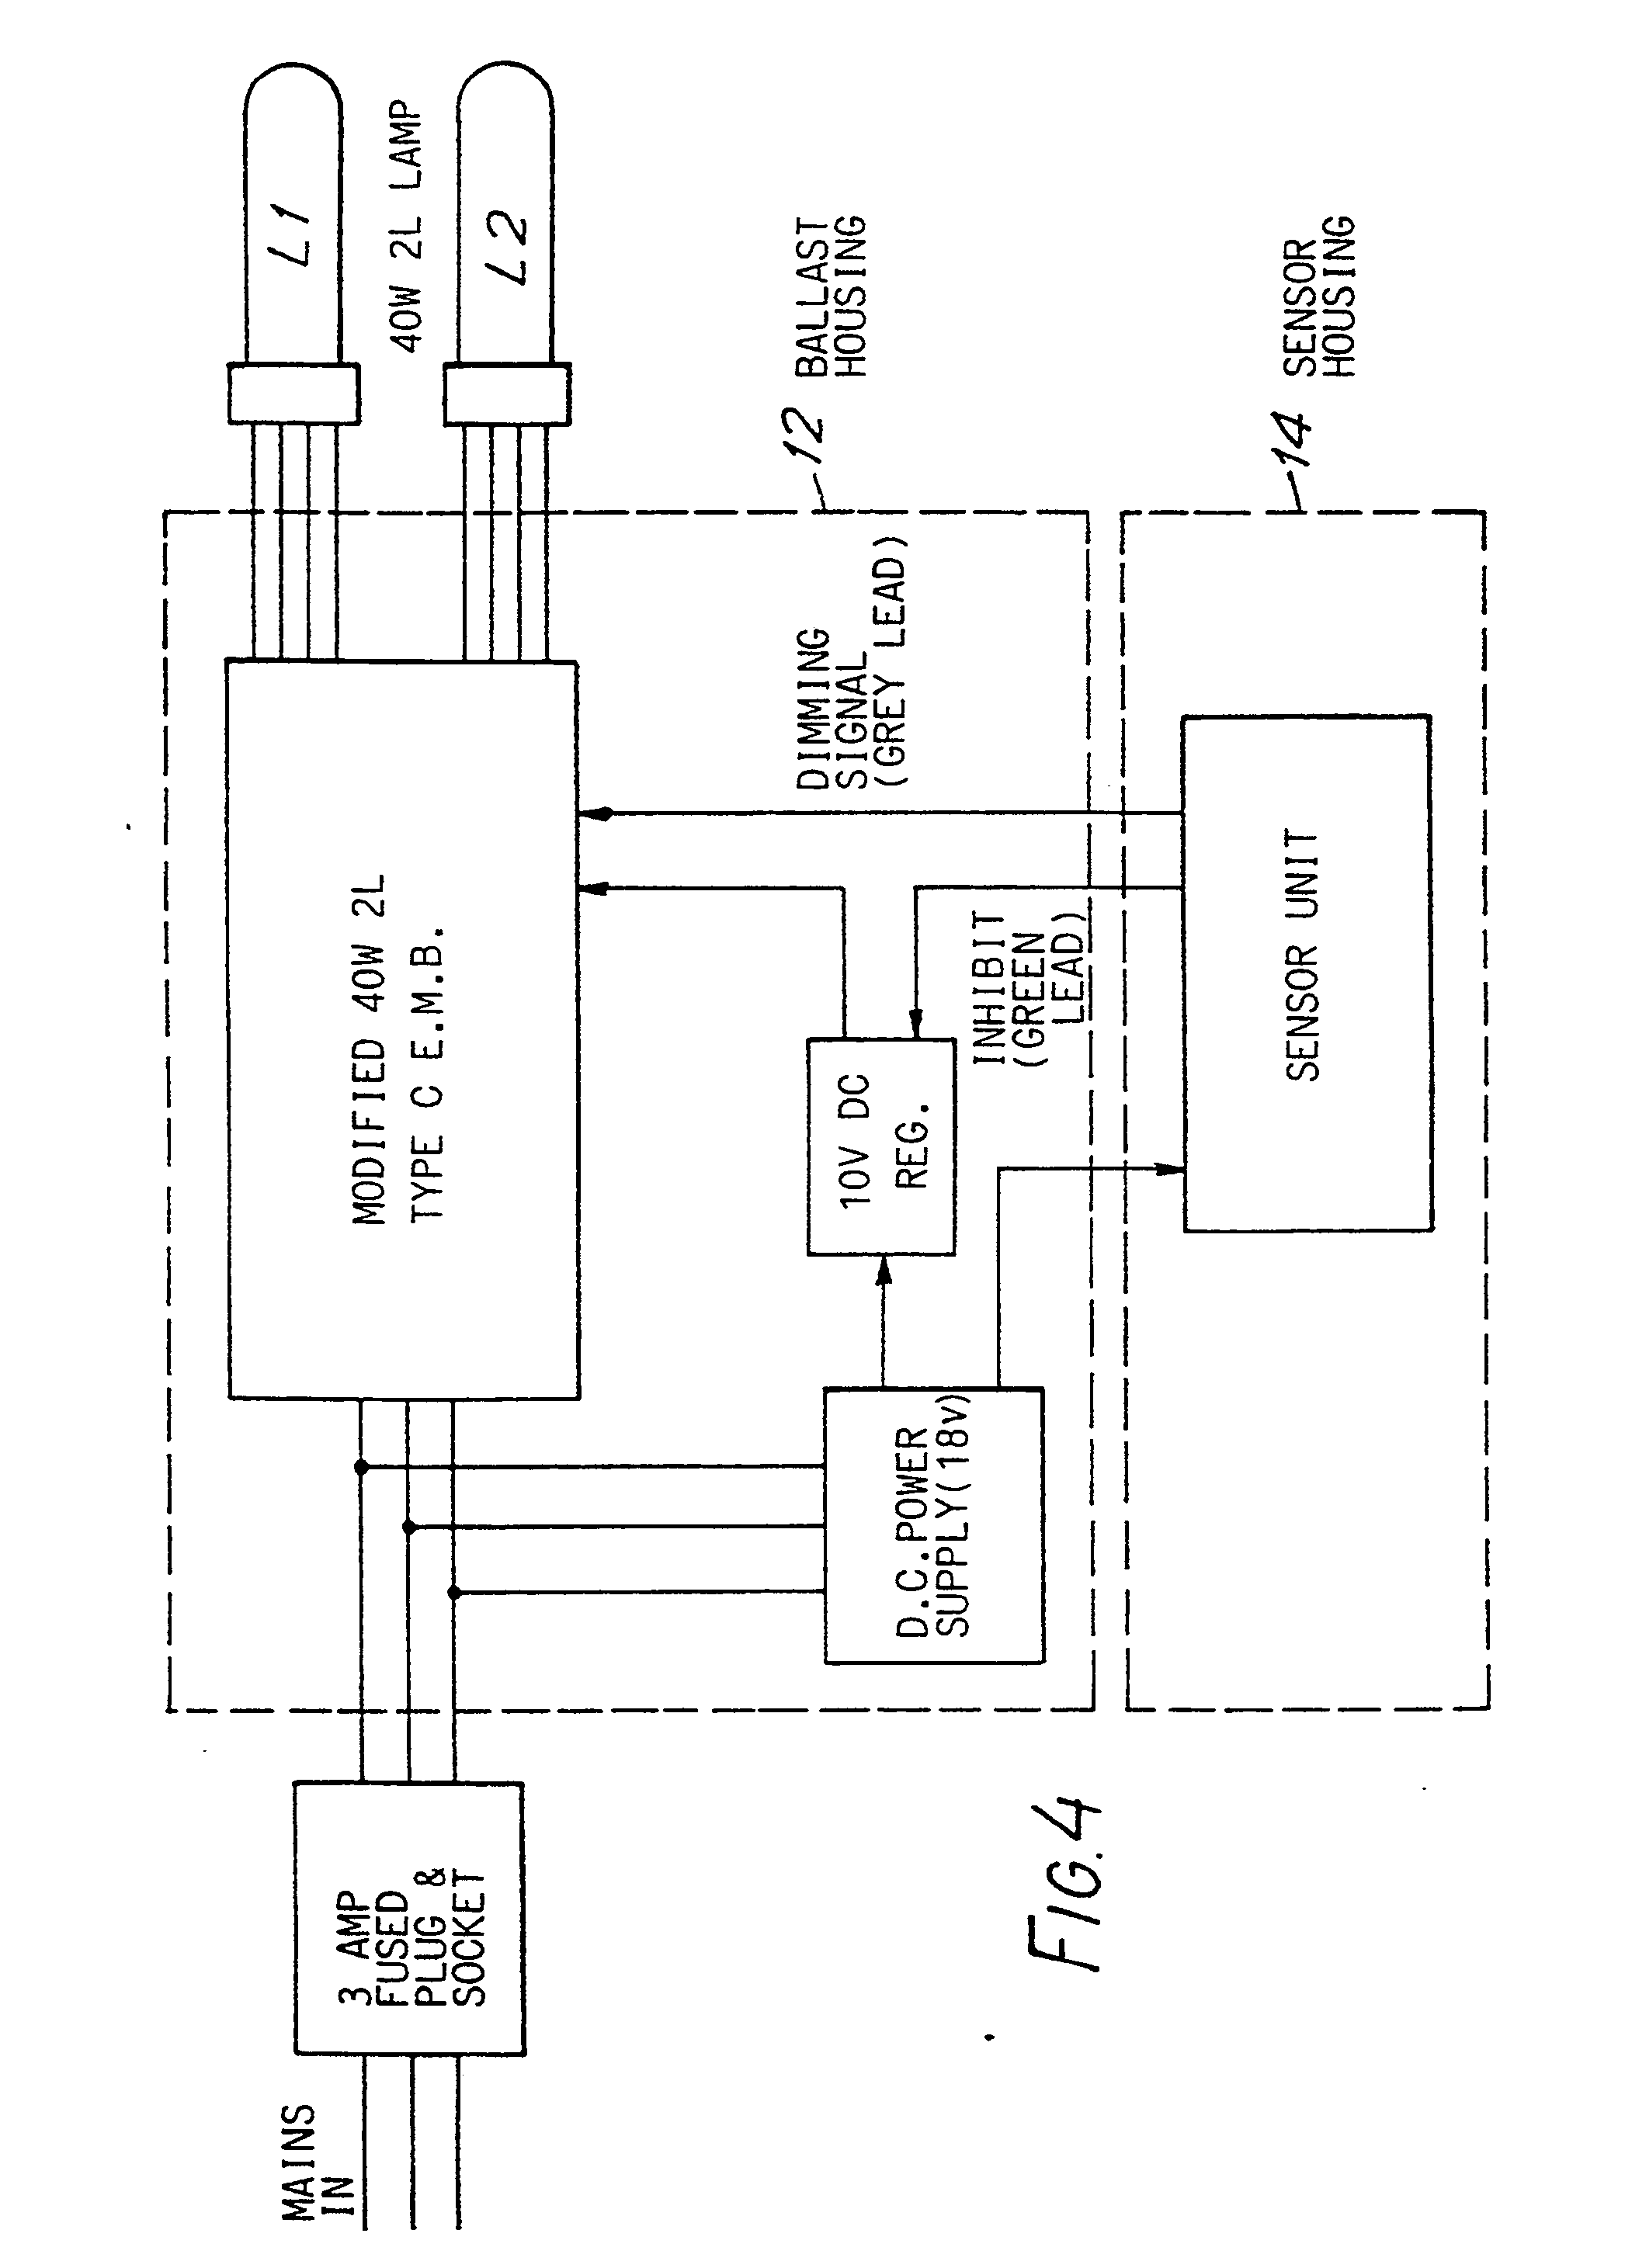 imgf0003 patent ep0447136a2 a method for automatic switching and control helvar ballast wiring diagram at soozxer.org